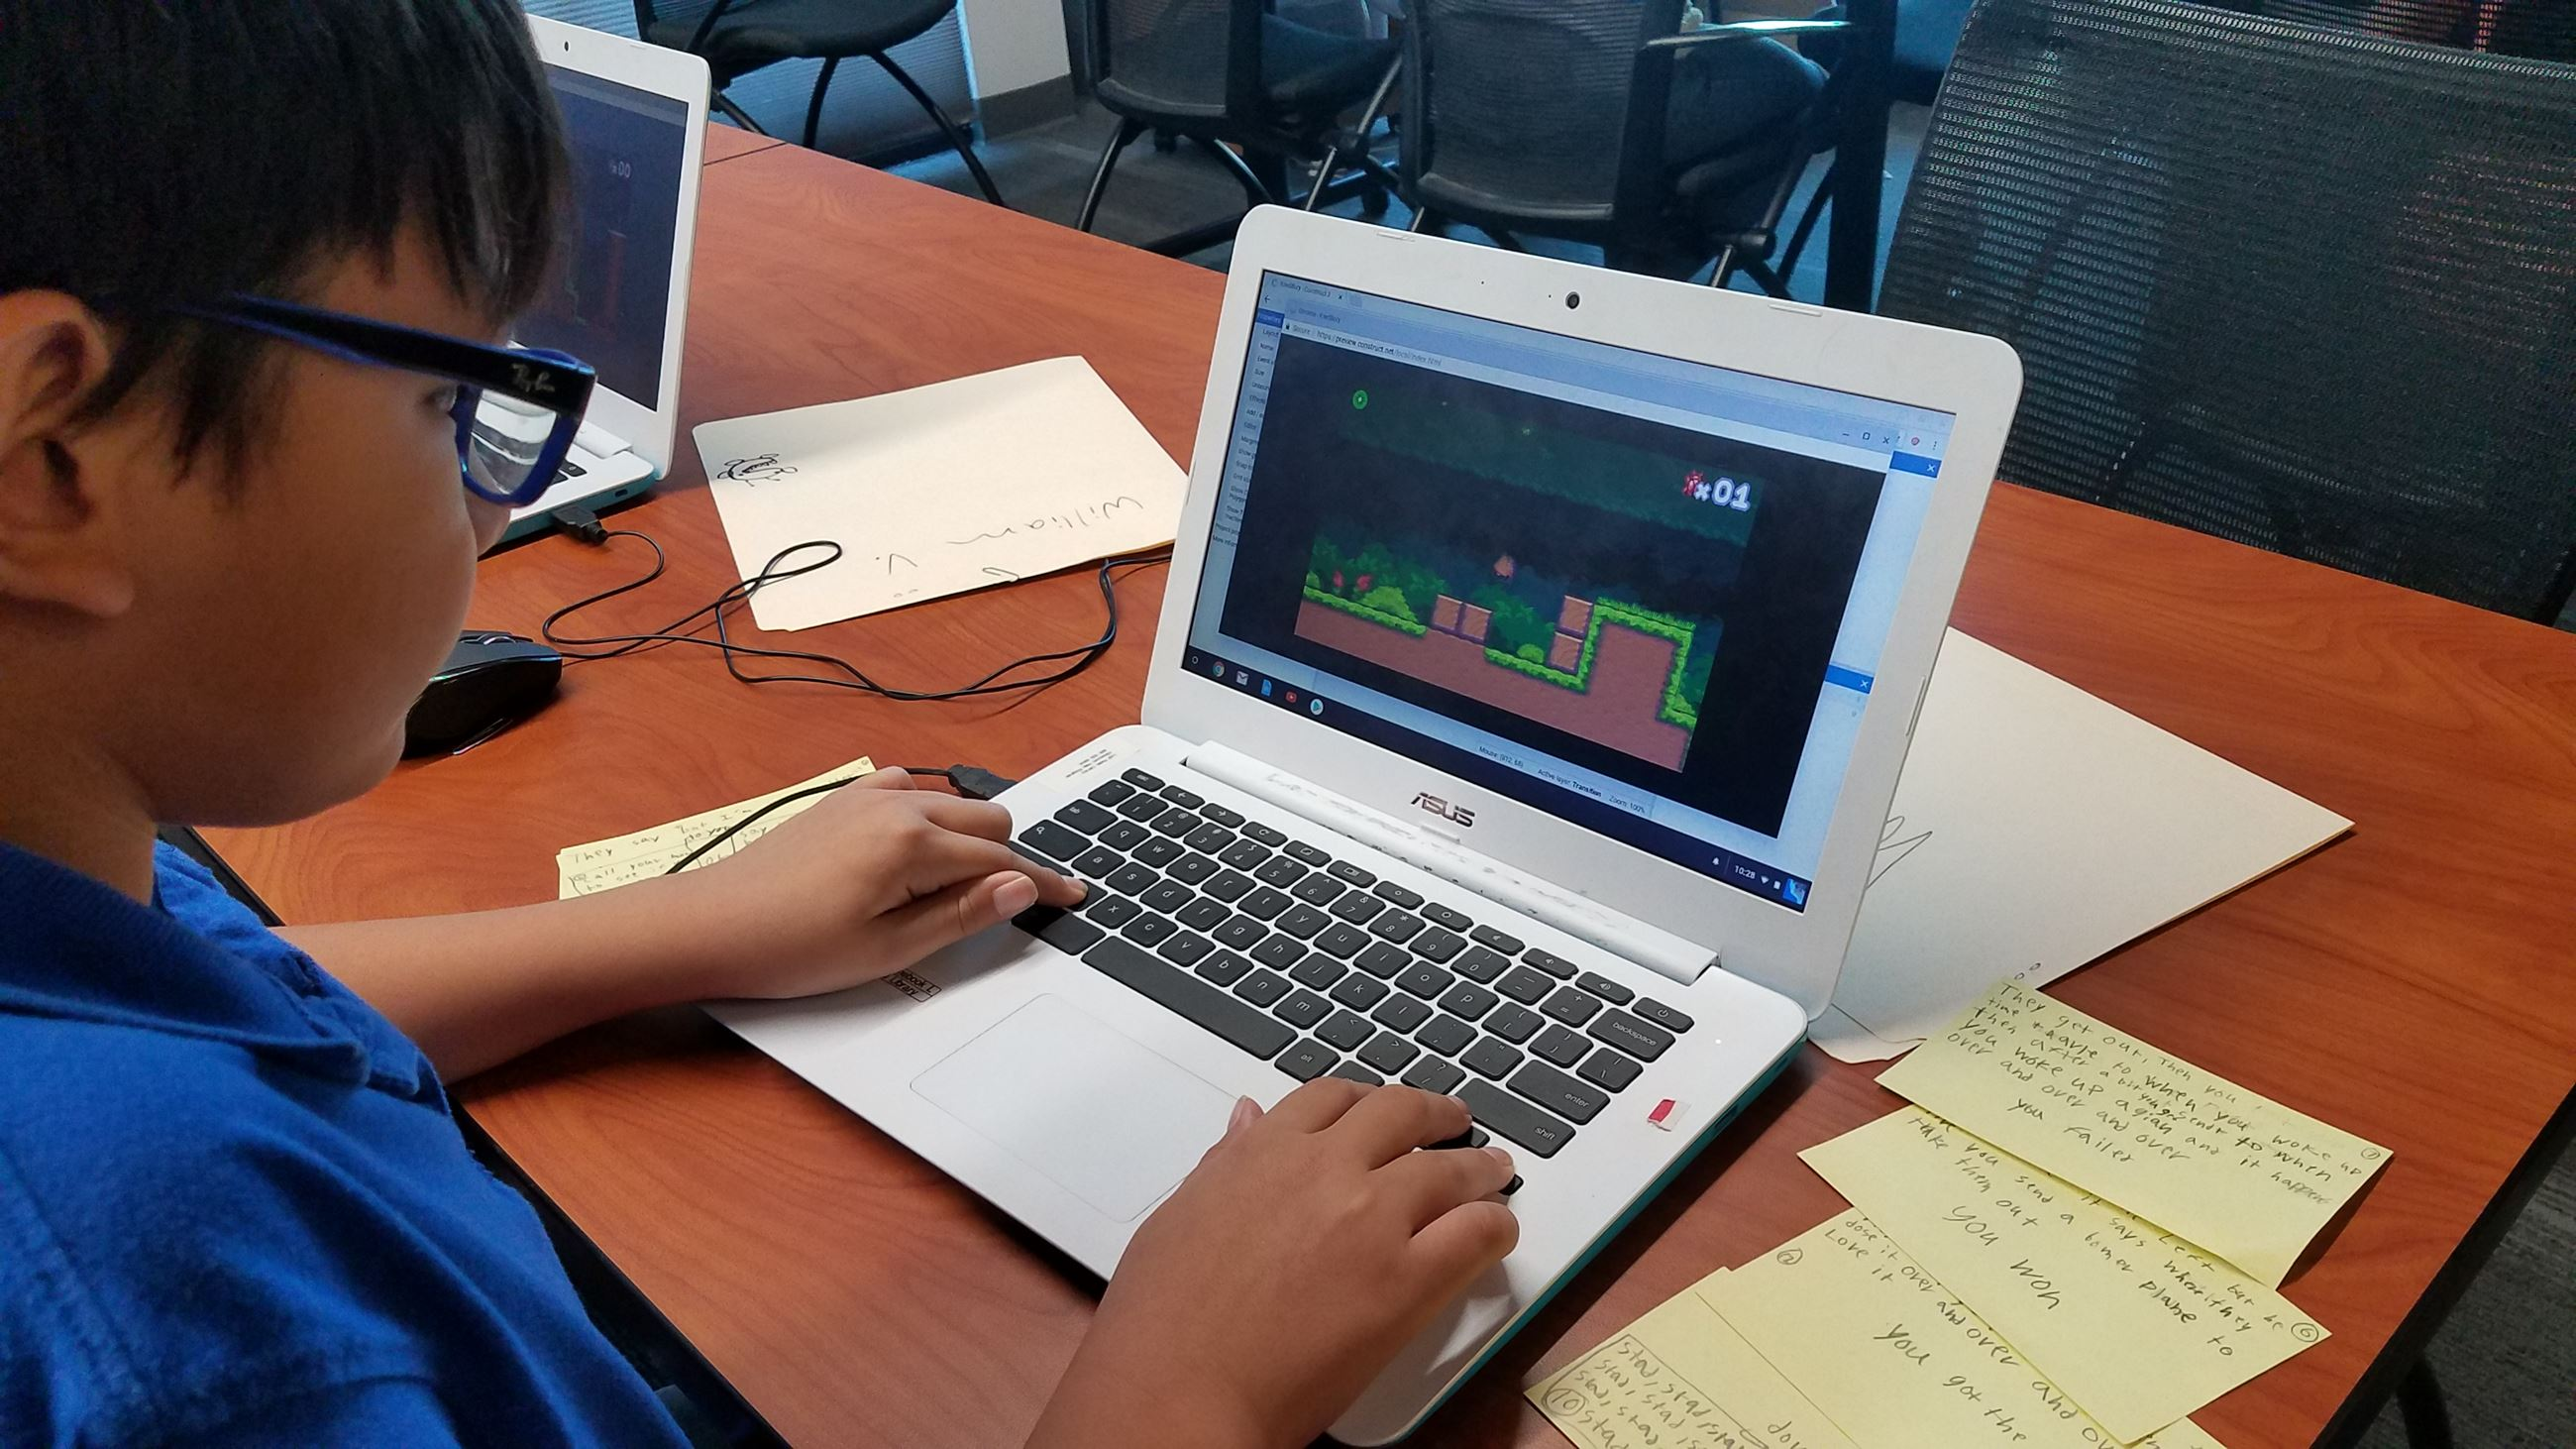 A middle school age boy sits at a computer designing a video game